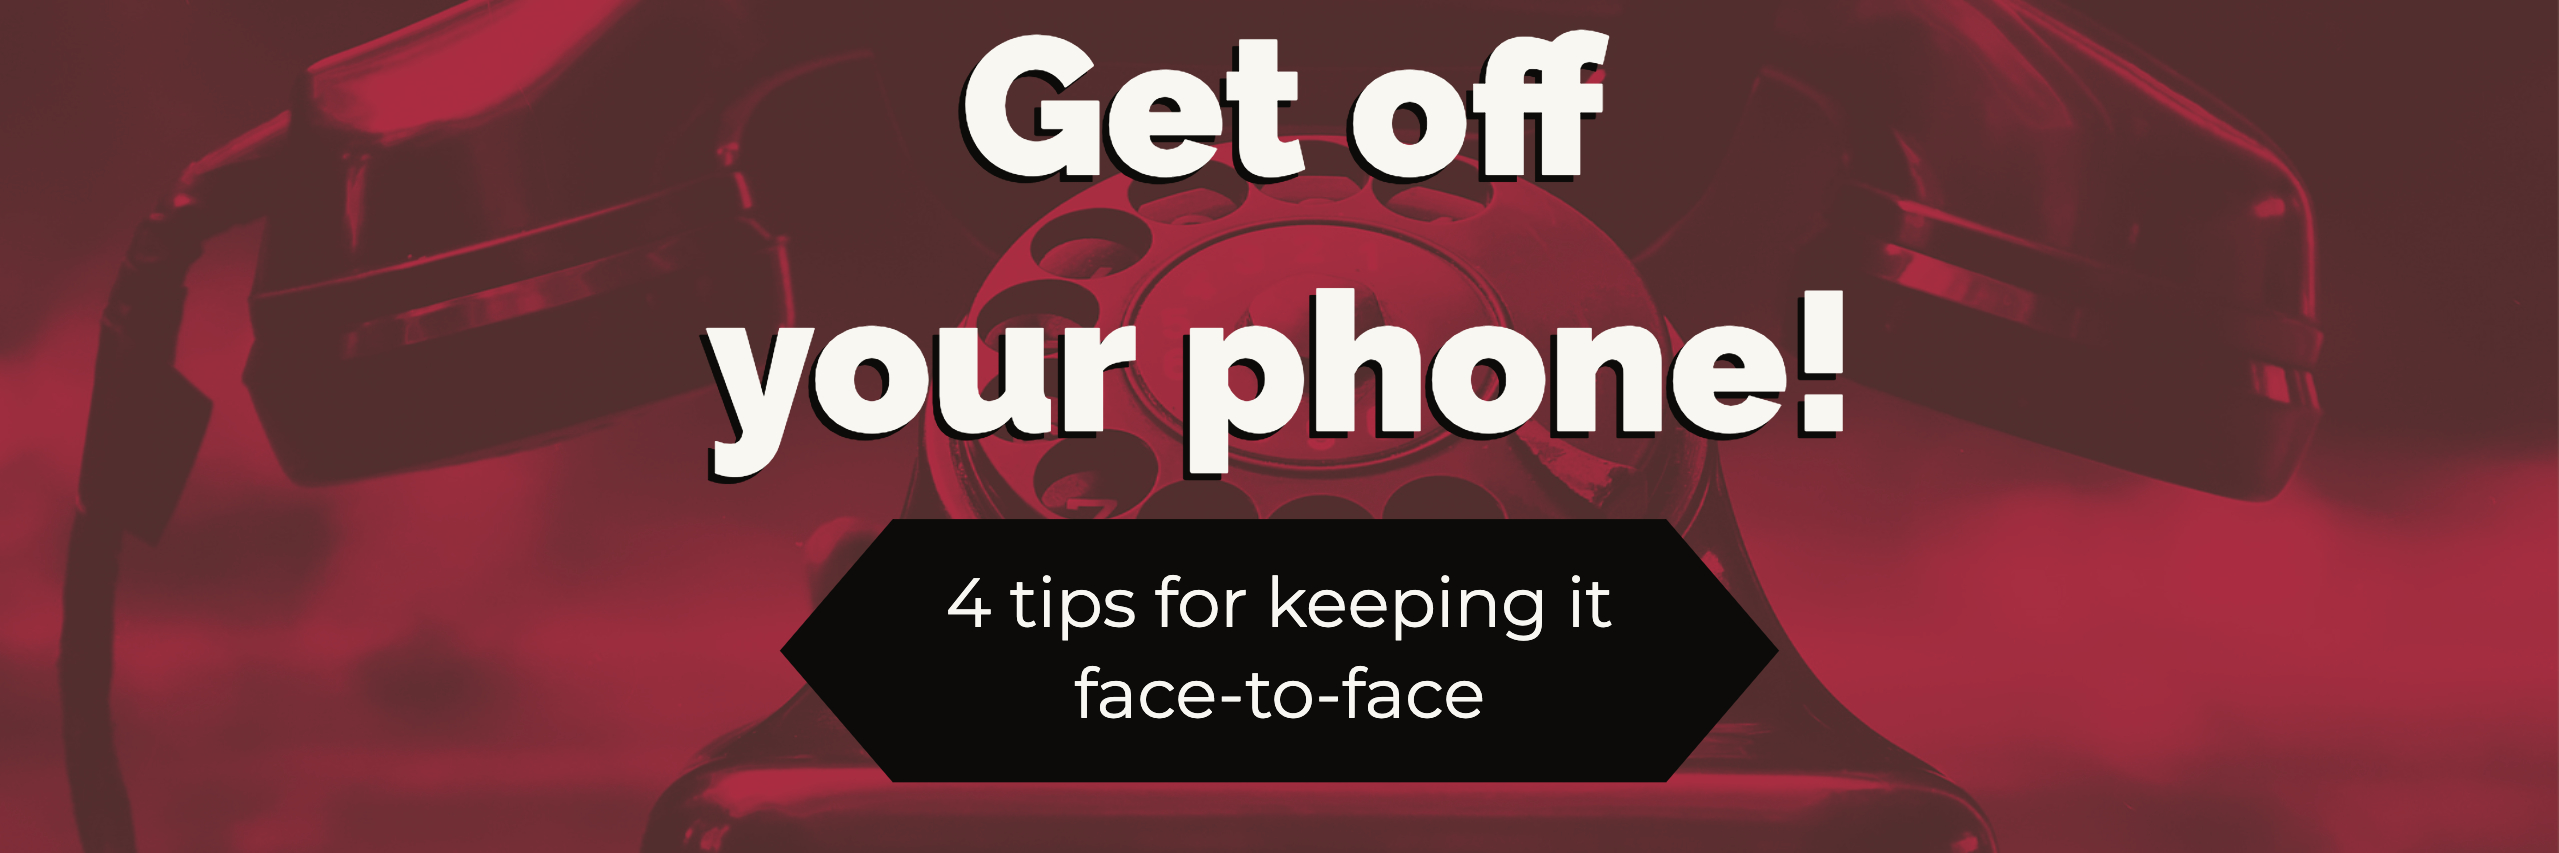 Get off your phone! 4 tips for keeping it face-to-face